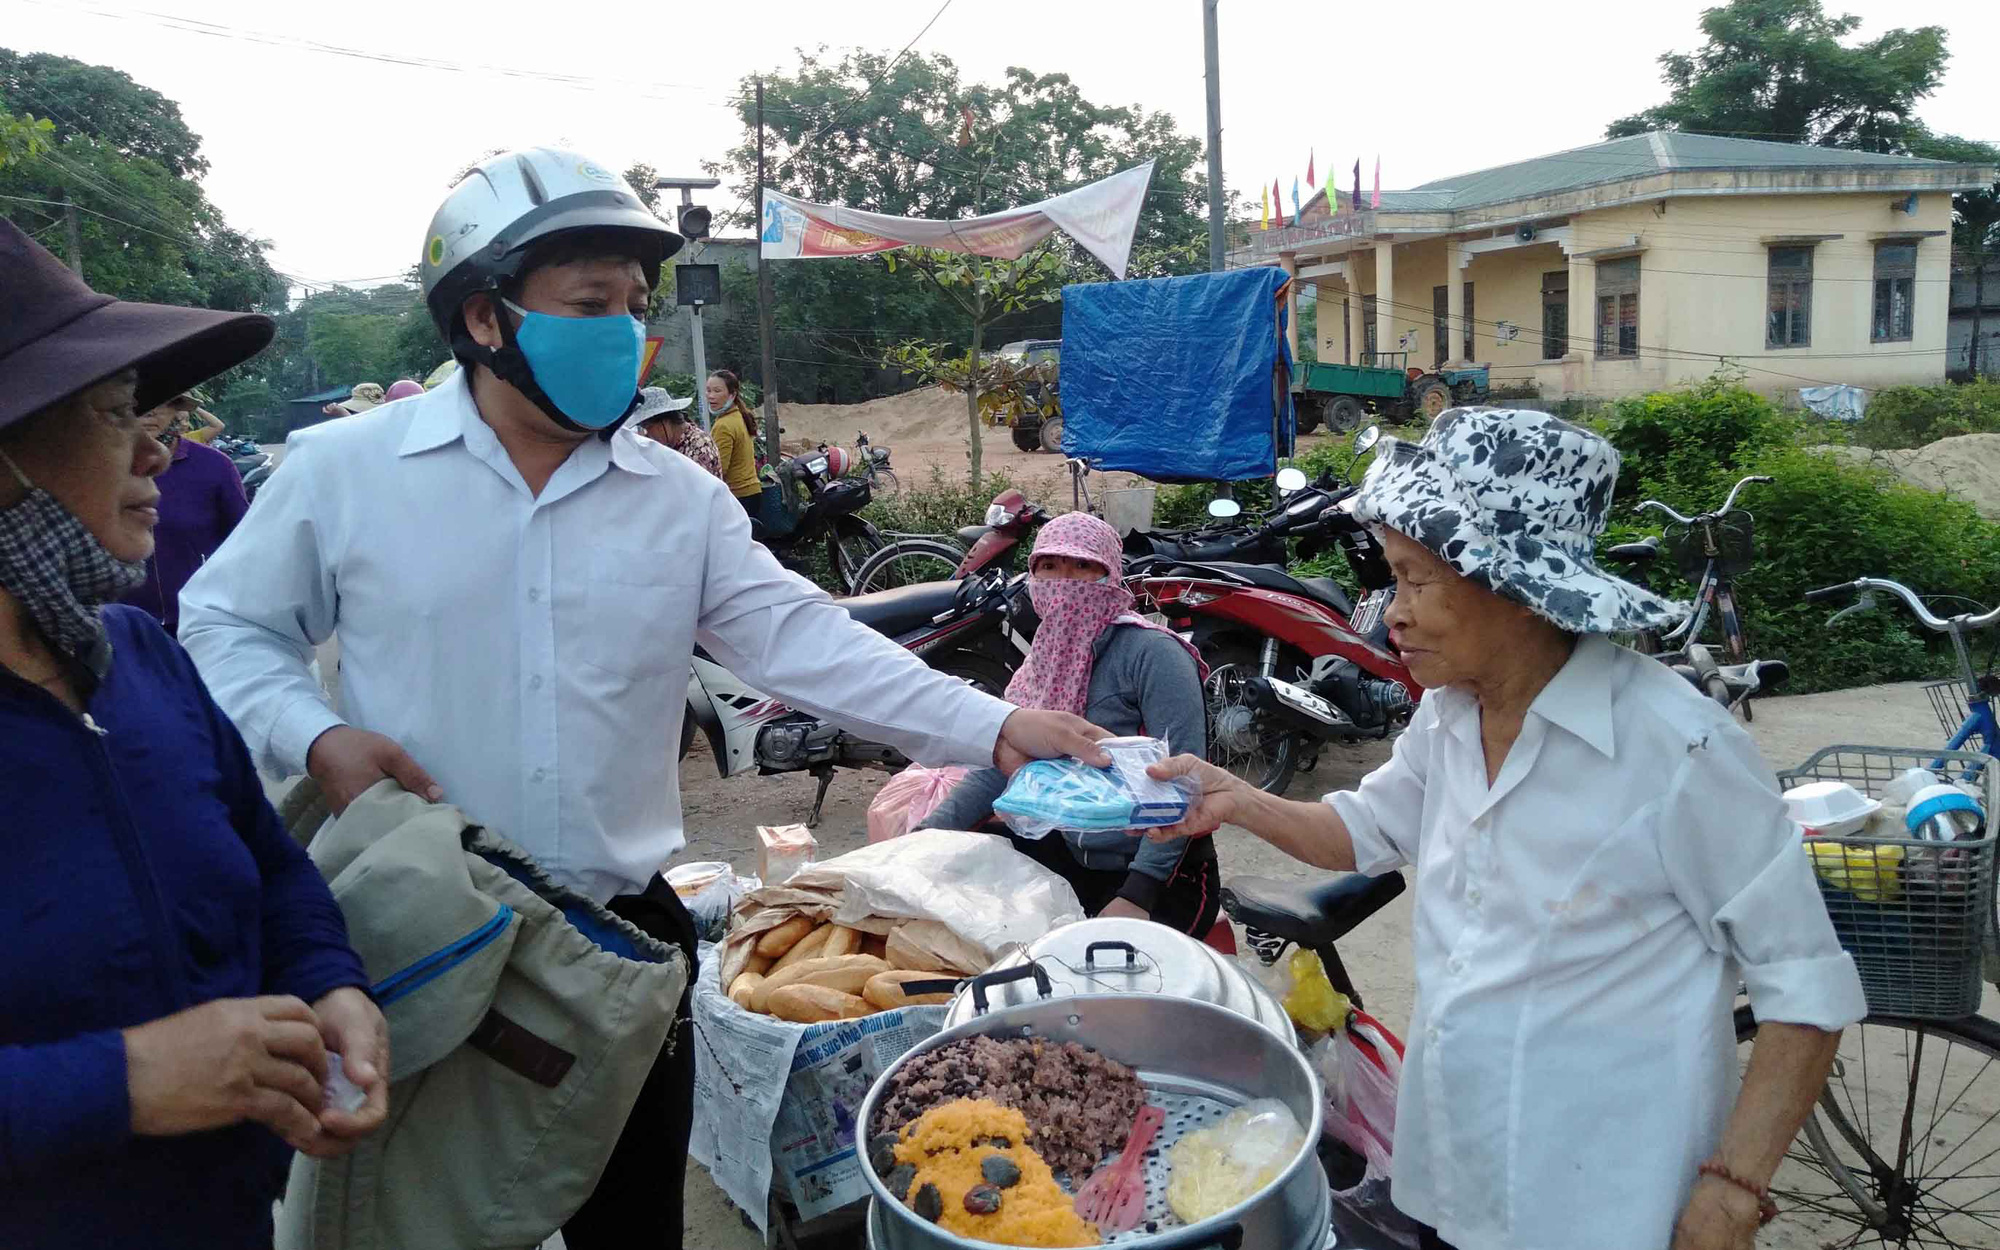 Communities in Vietnam reach out as fight against coronavirus goes on